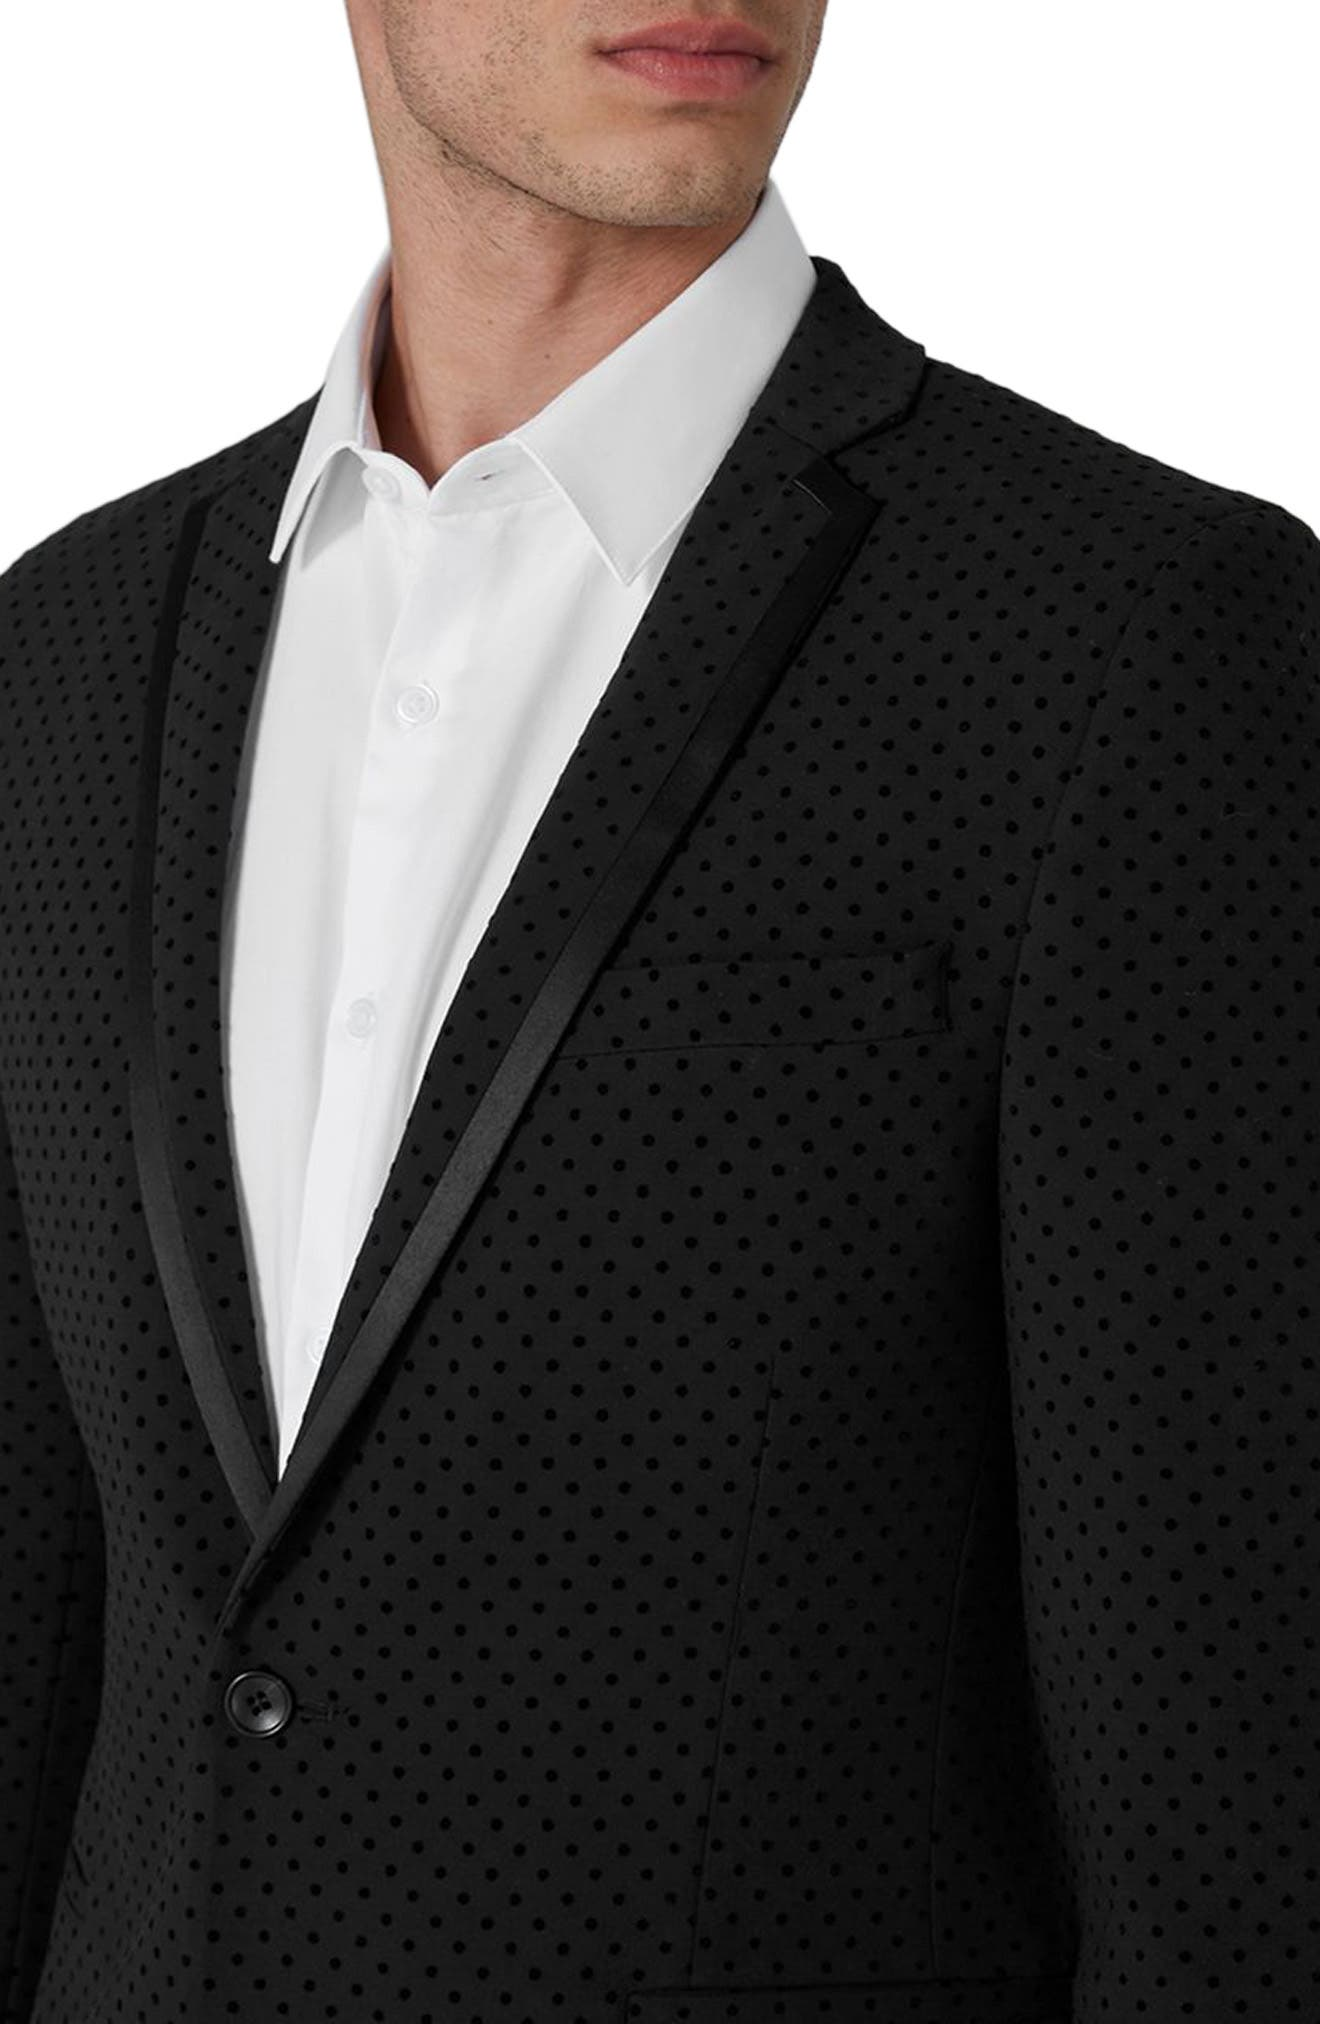 Dotted Ultra Skinny Fit Suit Jacket,                             Alternate thumbnail 3, color,                             001